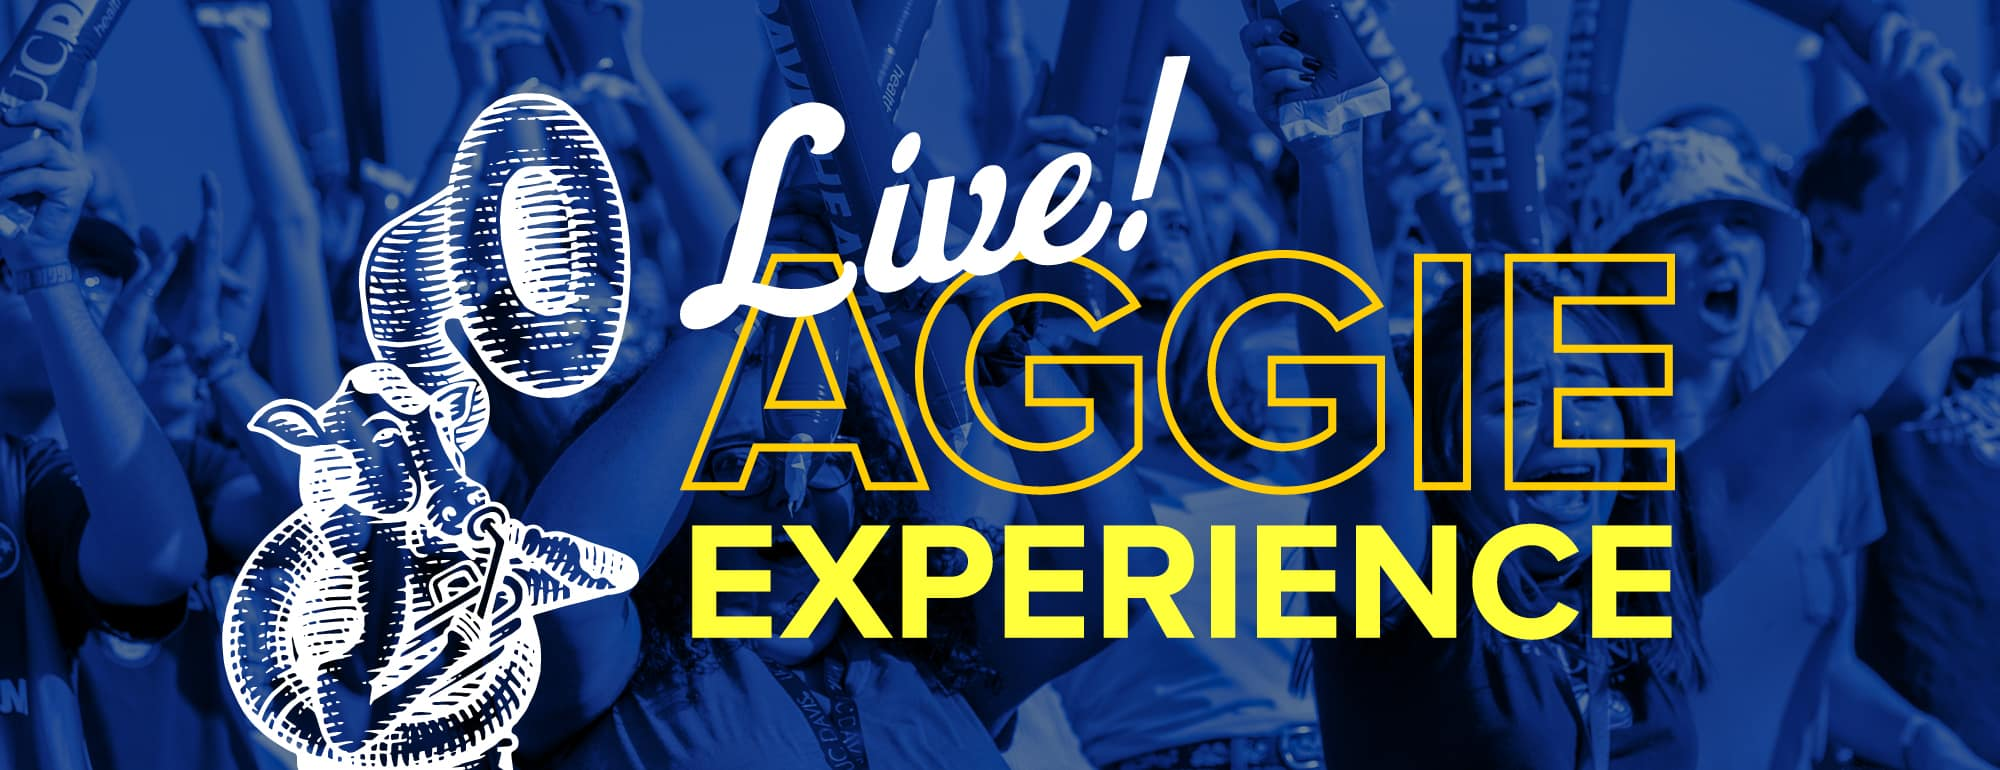 "students cheering in behind graphic of a cow playing a sousaphone ""Aggie Experience Live!"""